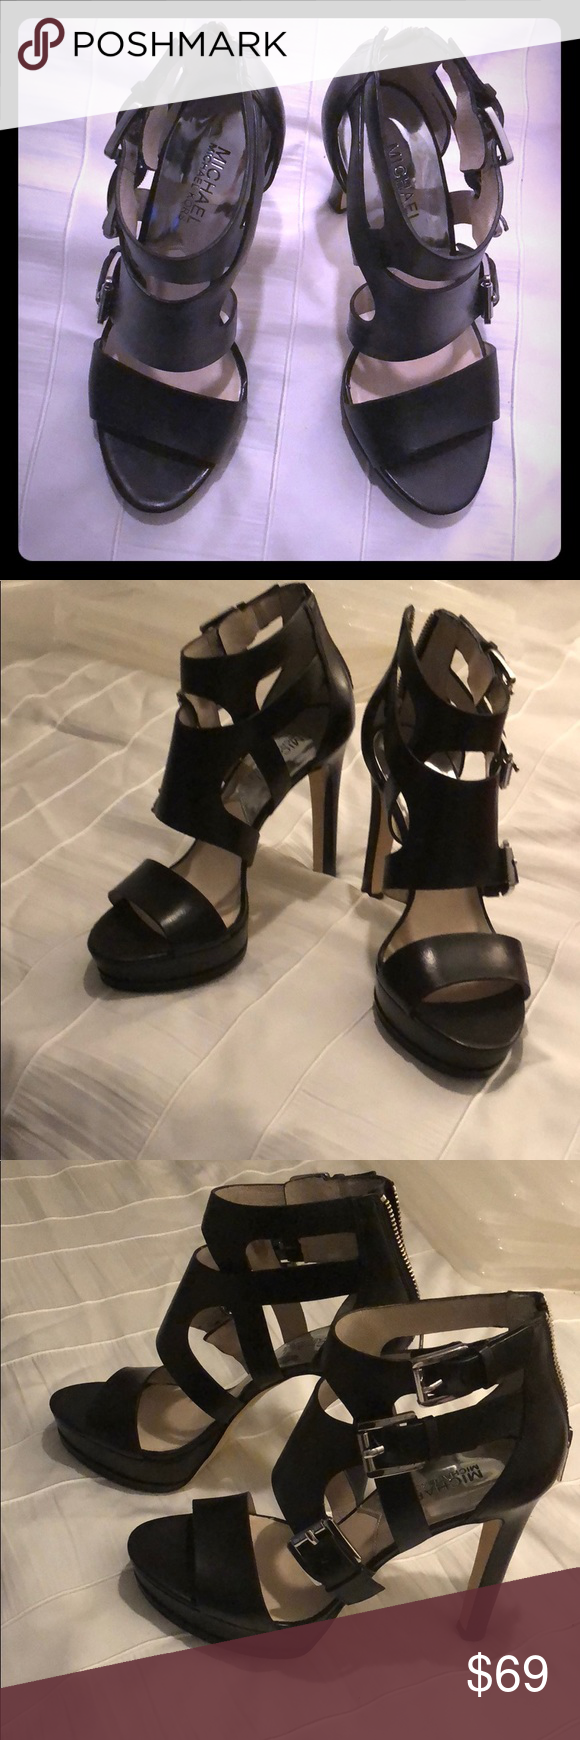 1861434a5bac Michael Kors Buckled Leather High Heel Sandal Michael Kors Strappy Buckled  Leather High Heel Sandal for